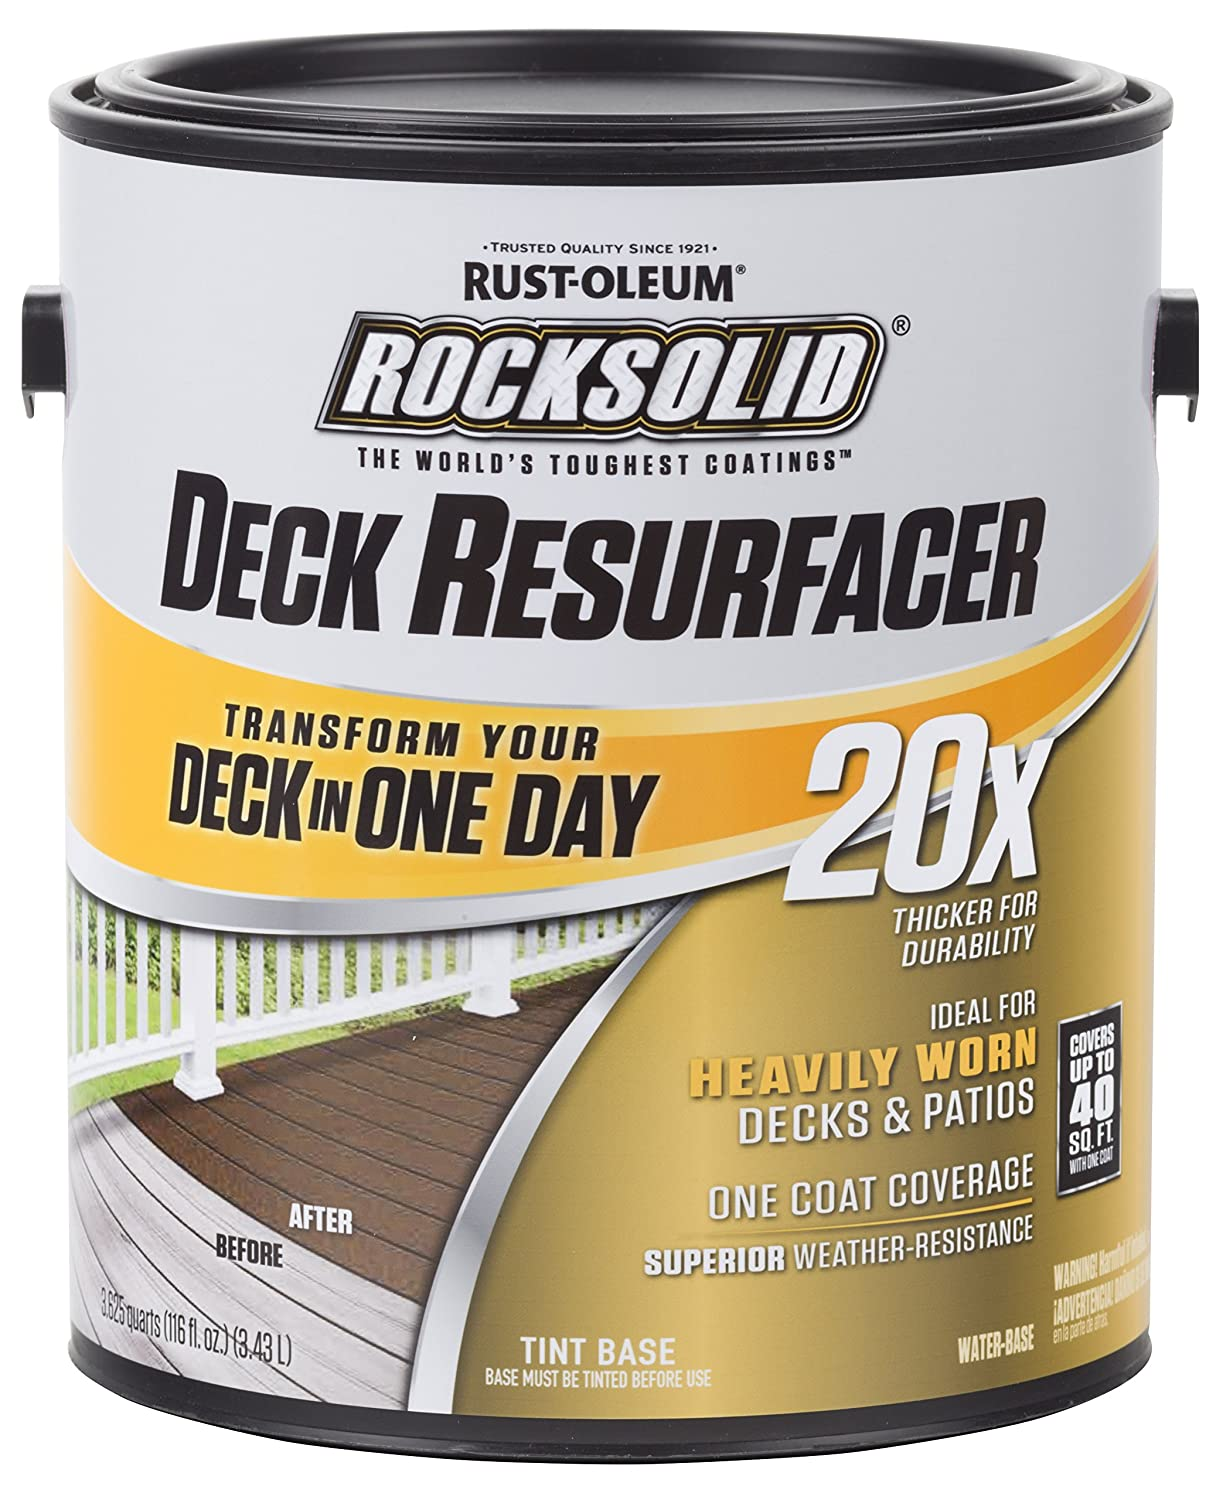 Rust Oleum 319367 RockSolid 20X Deck Resurfacer 1 Gallon Canvas